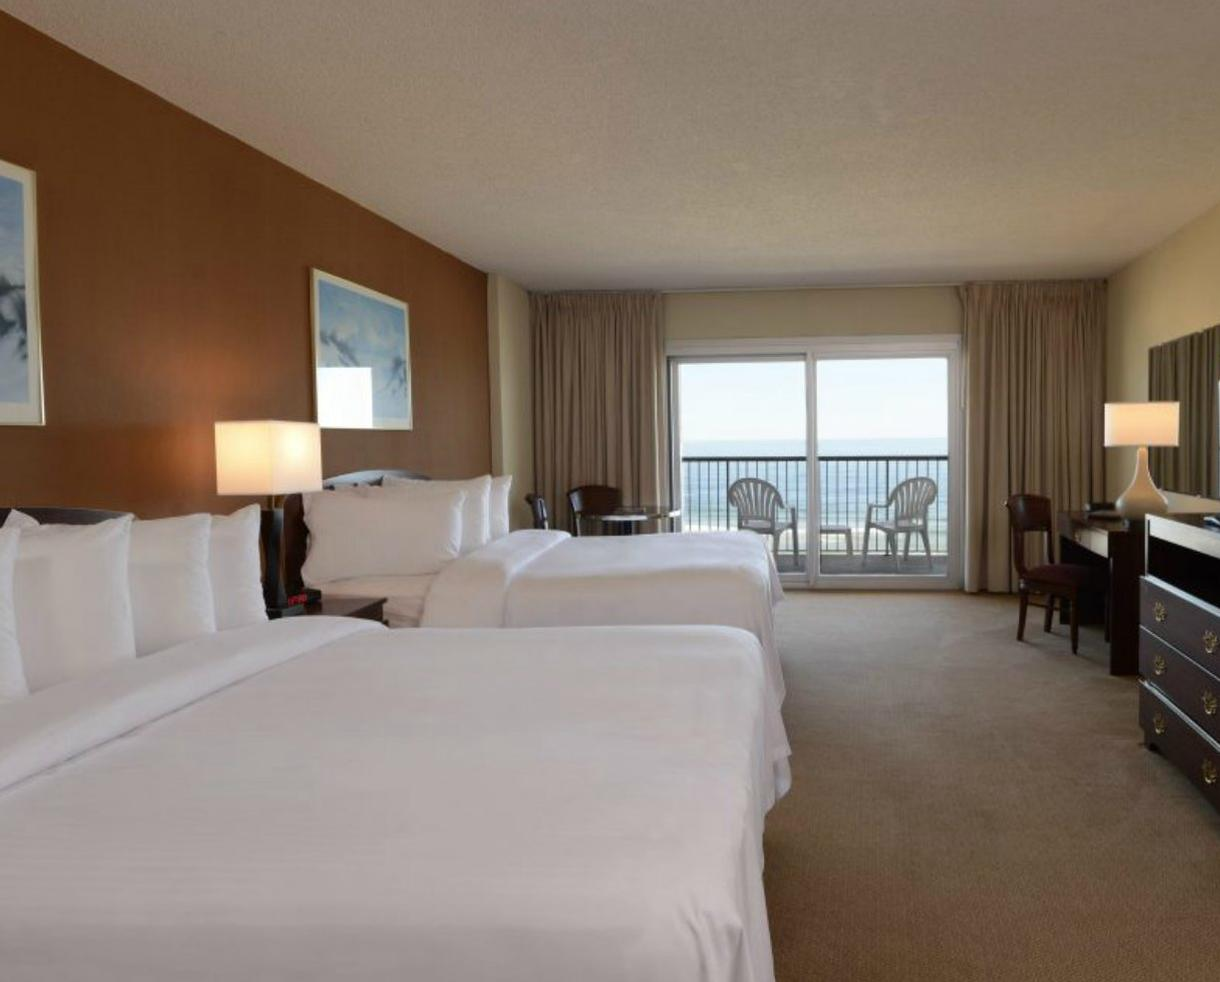 1-Night Weeknight Getaway in an Oceanfront Room at Grand Hotel and Spa - Valid from Oct. 7 - Dec. 27, 2018